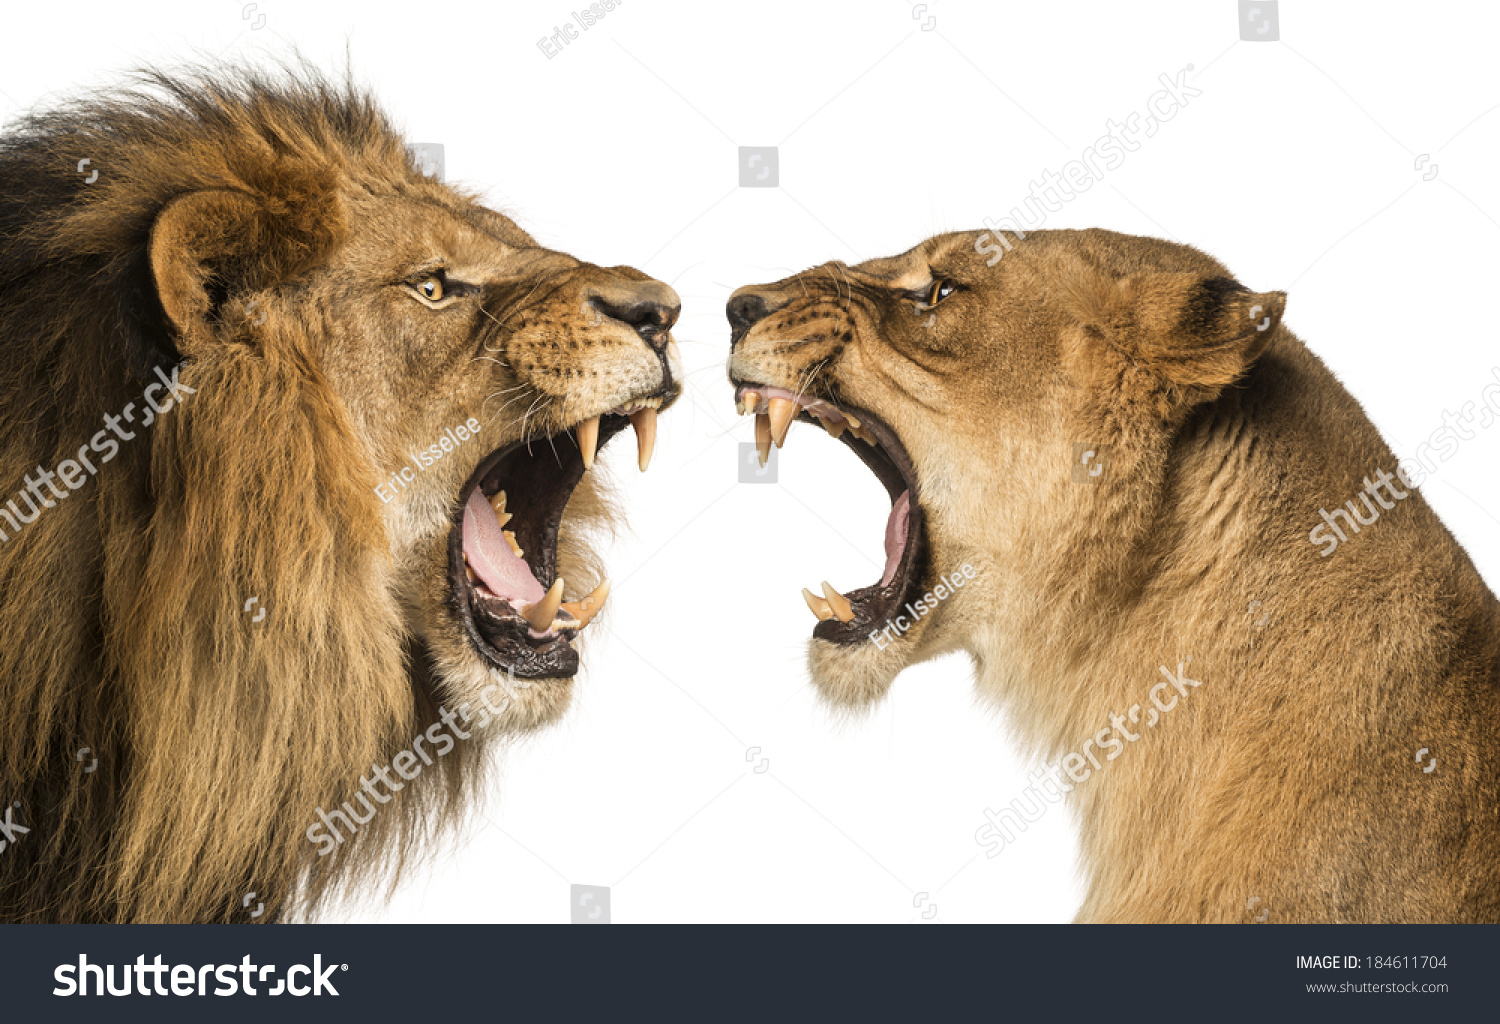 Lioness Growling At Lion Close-up of a lion and lioness roaring at ...